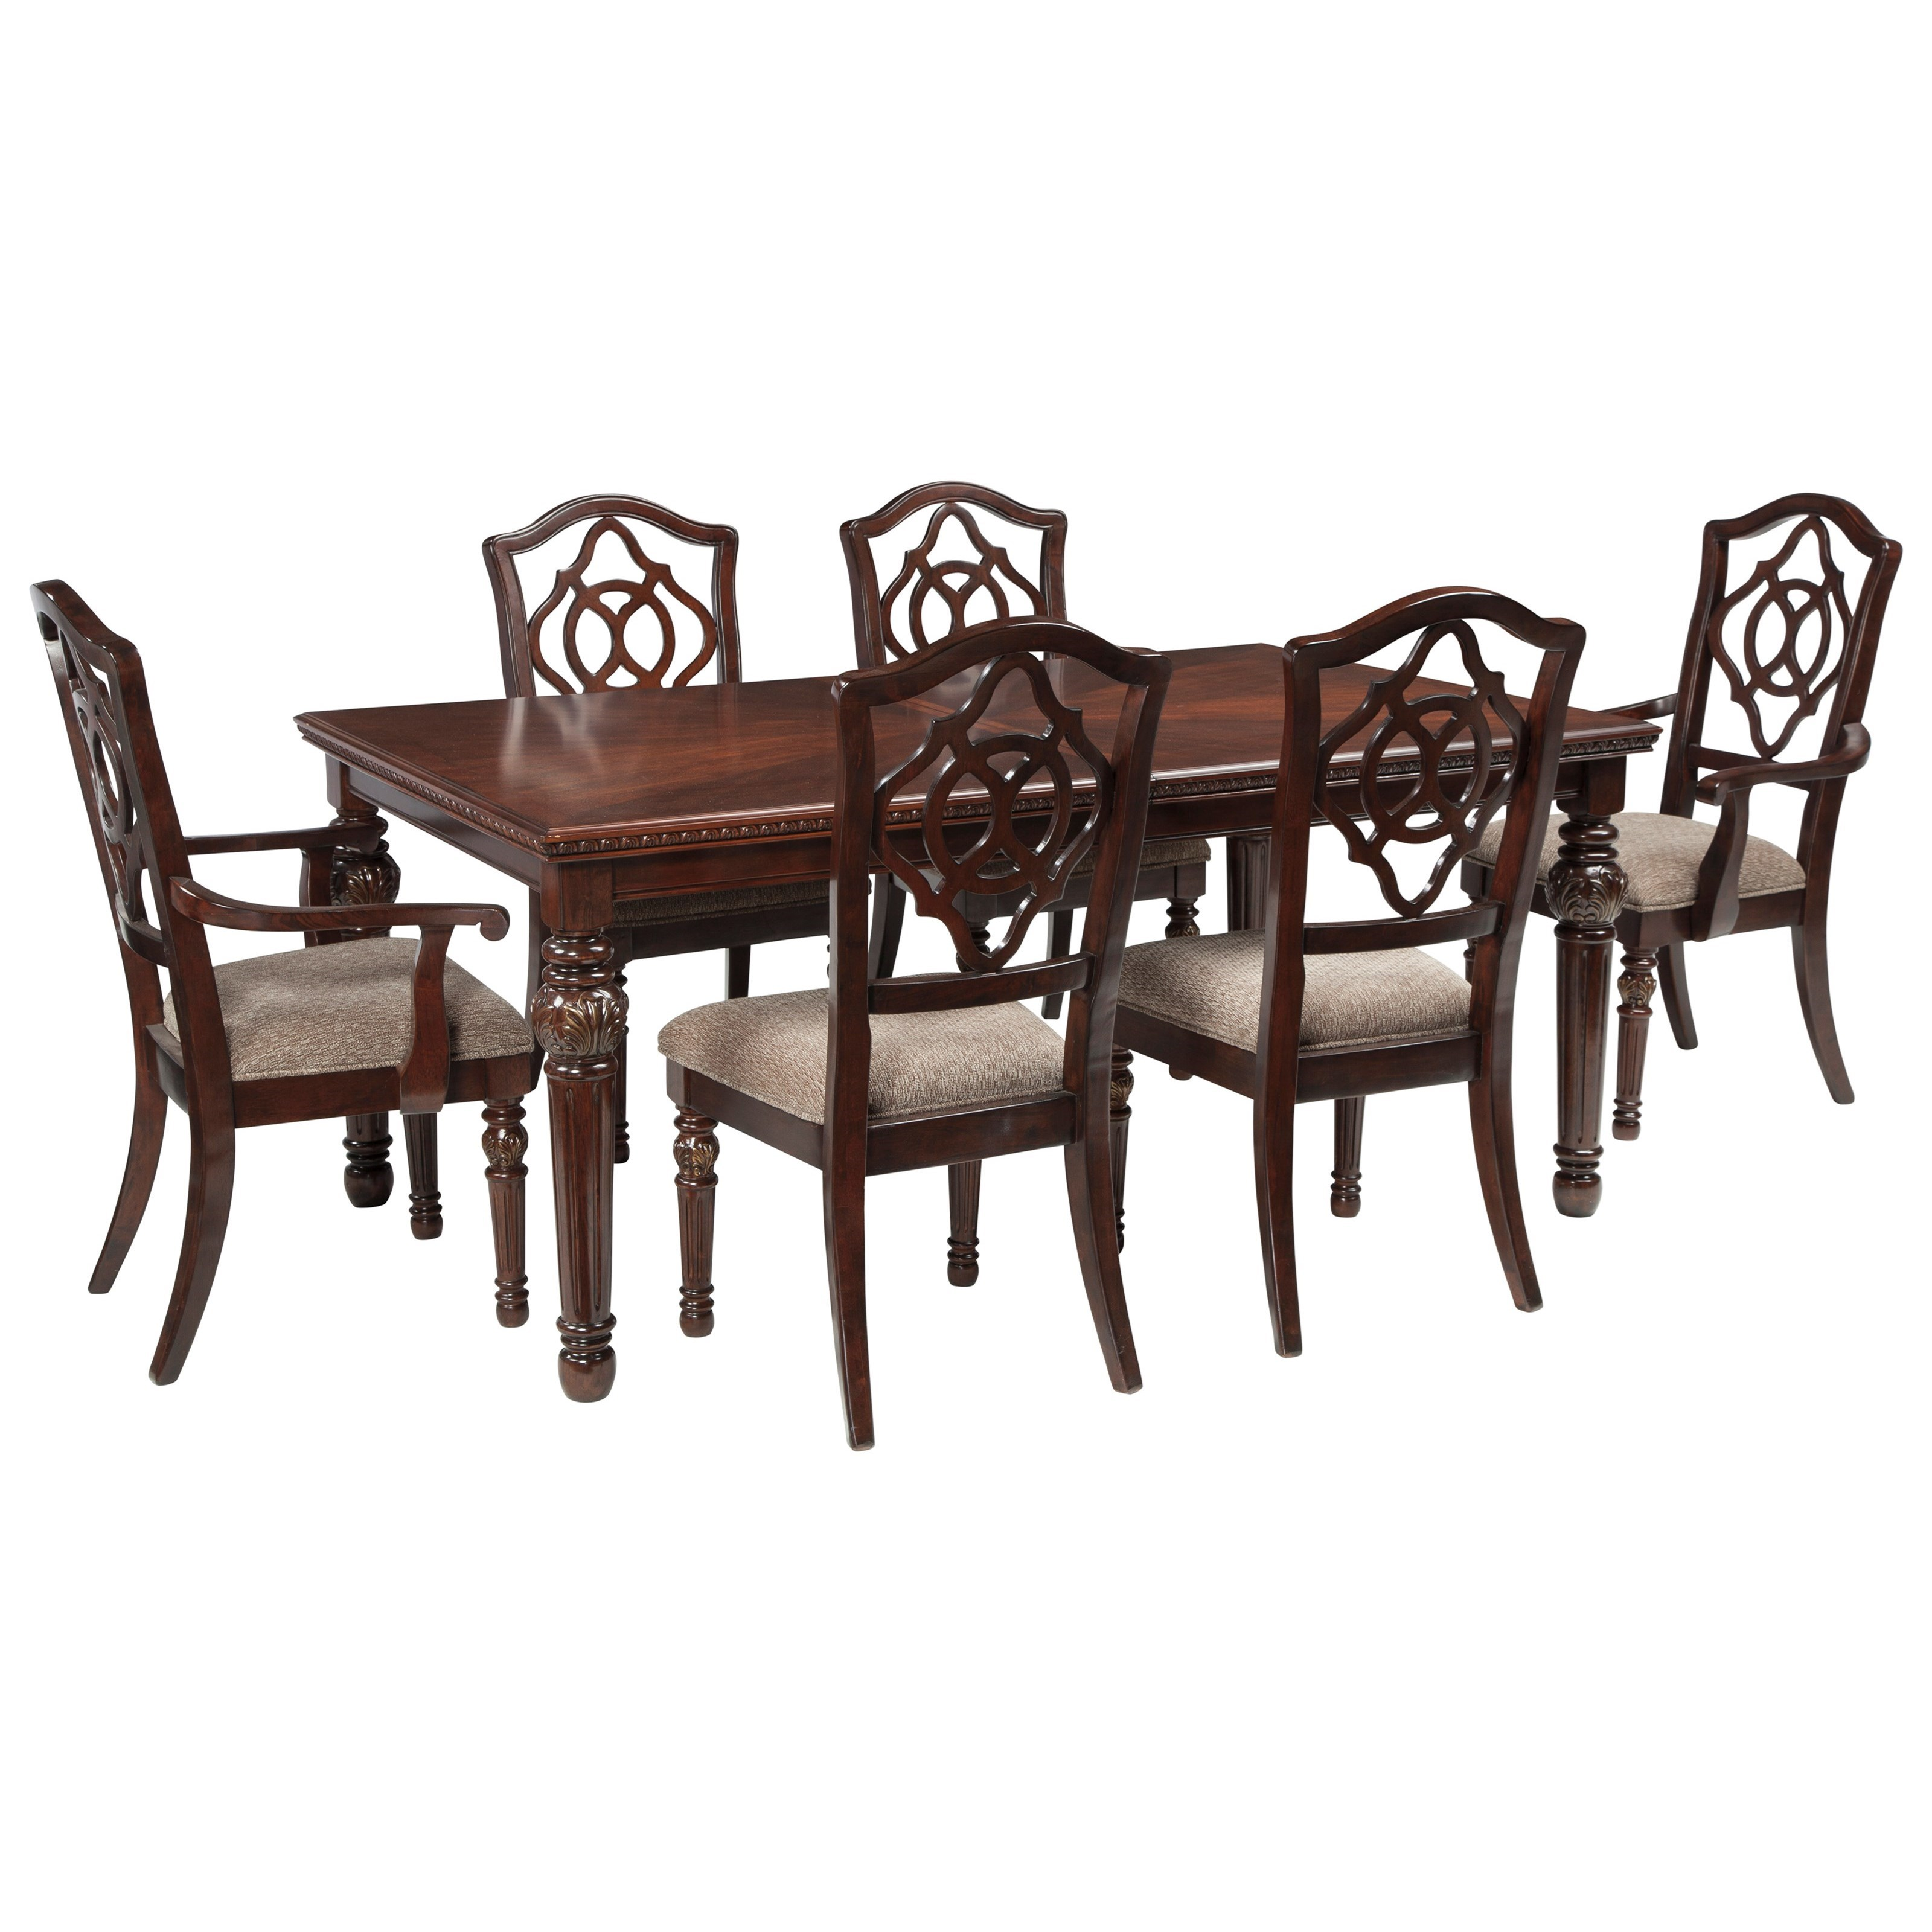 Signature Design by Ashley Leahlyn 7-Piece Rectangular Dining Table Set - Item Number: D626-35+2x01A+4x01